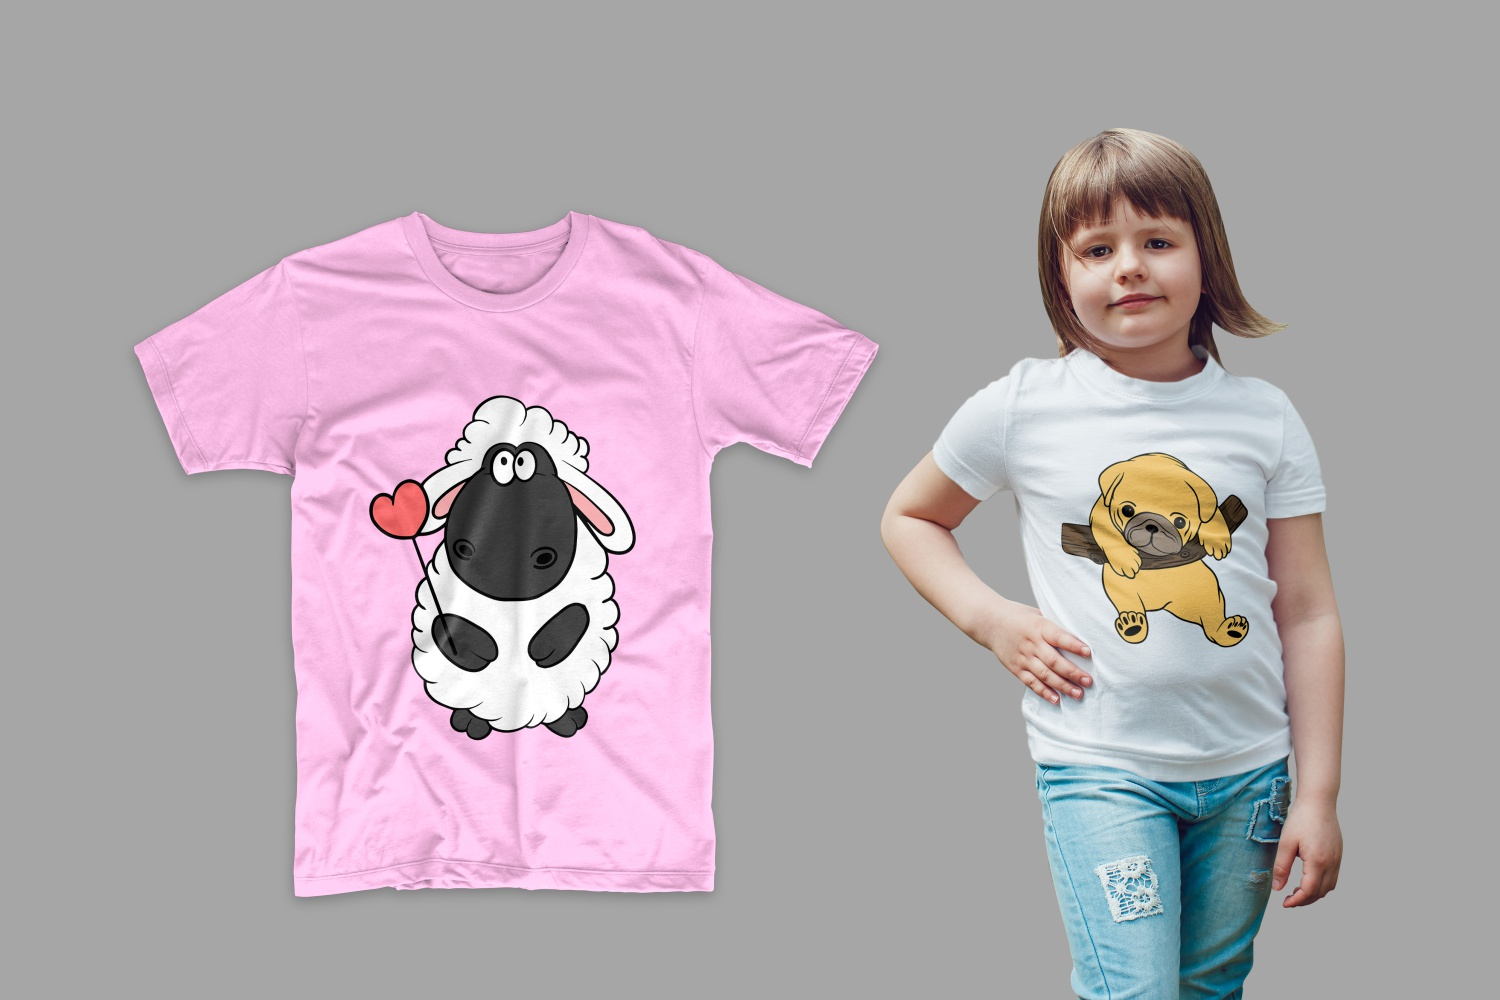 T-shirt with a sheep on the girl.